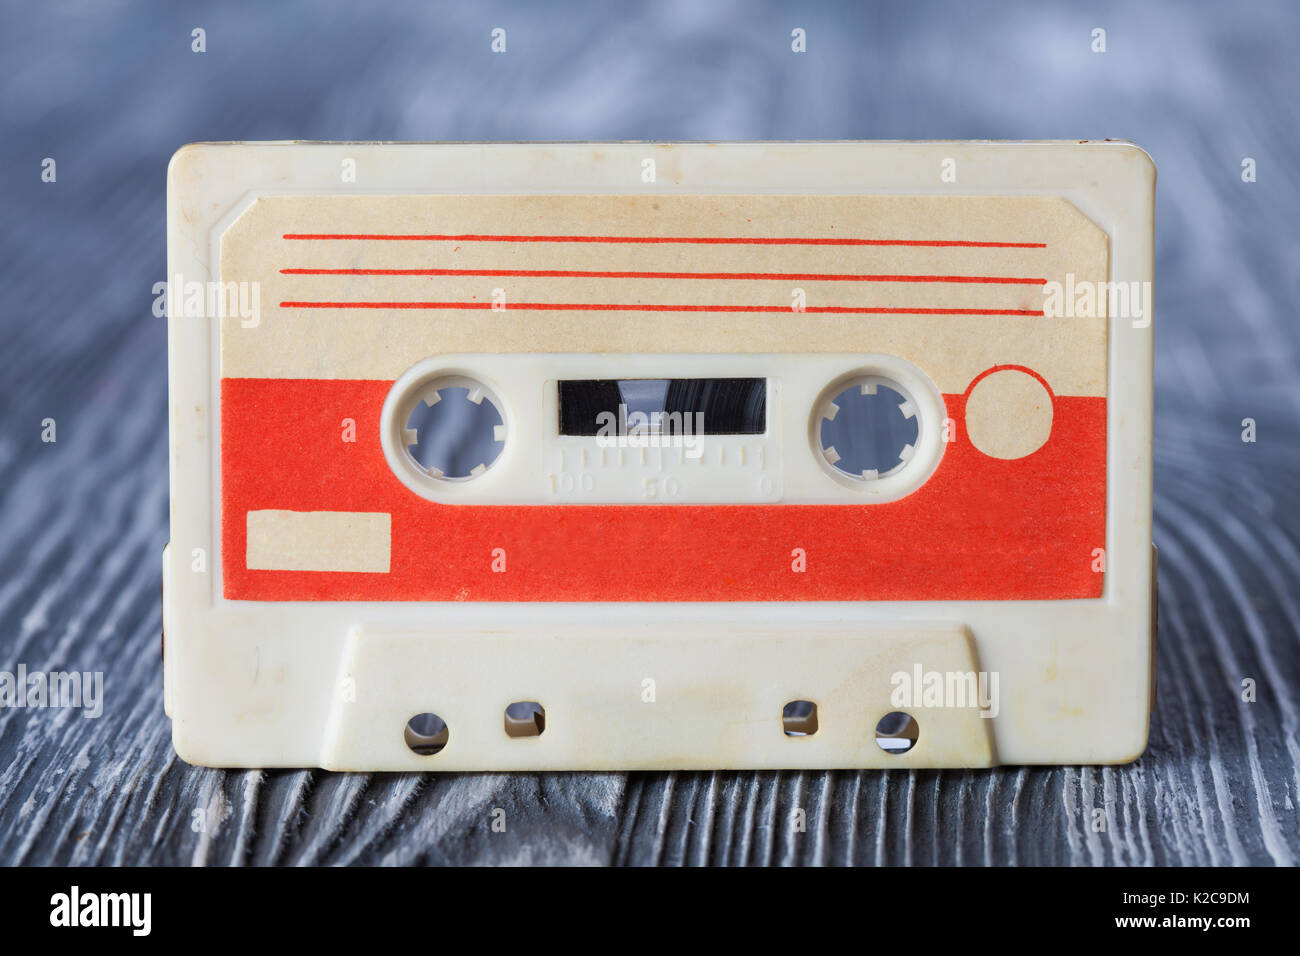 Red compact cassette with magnetic tape format for audio recording and playback. gray wooden background. Soft focus. - Stock Image